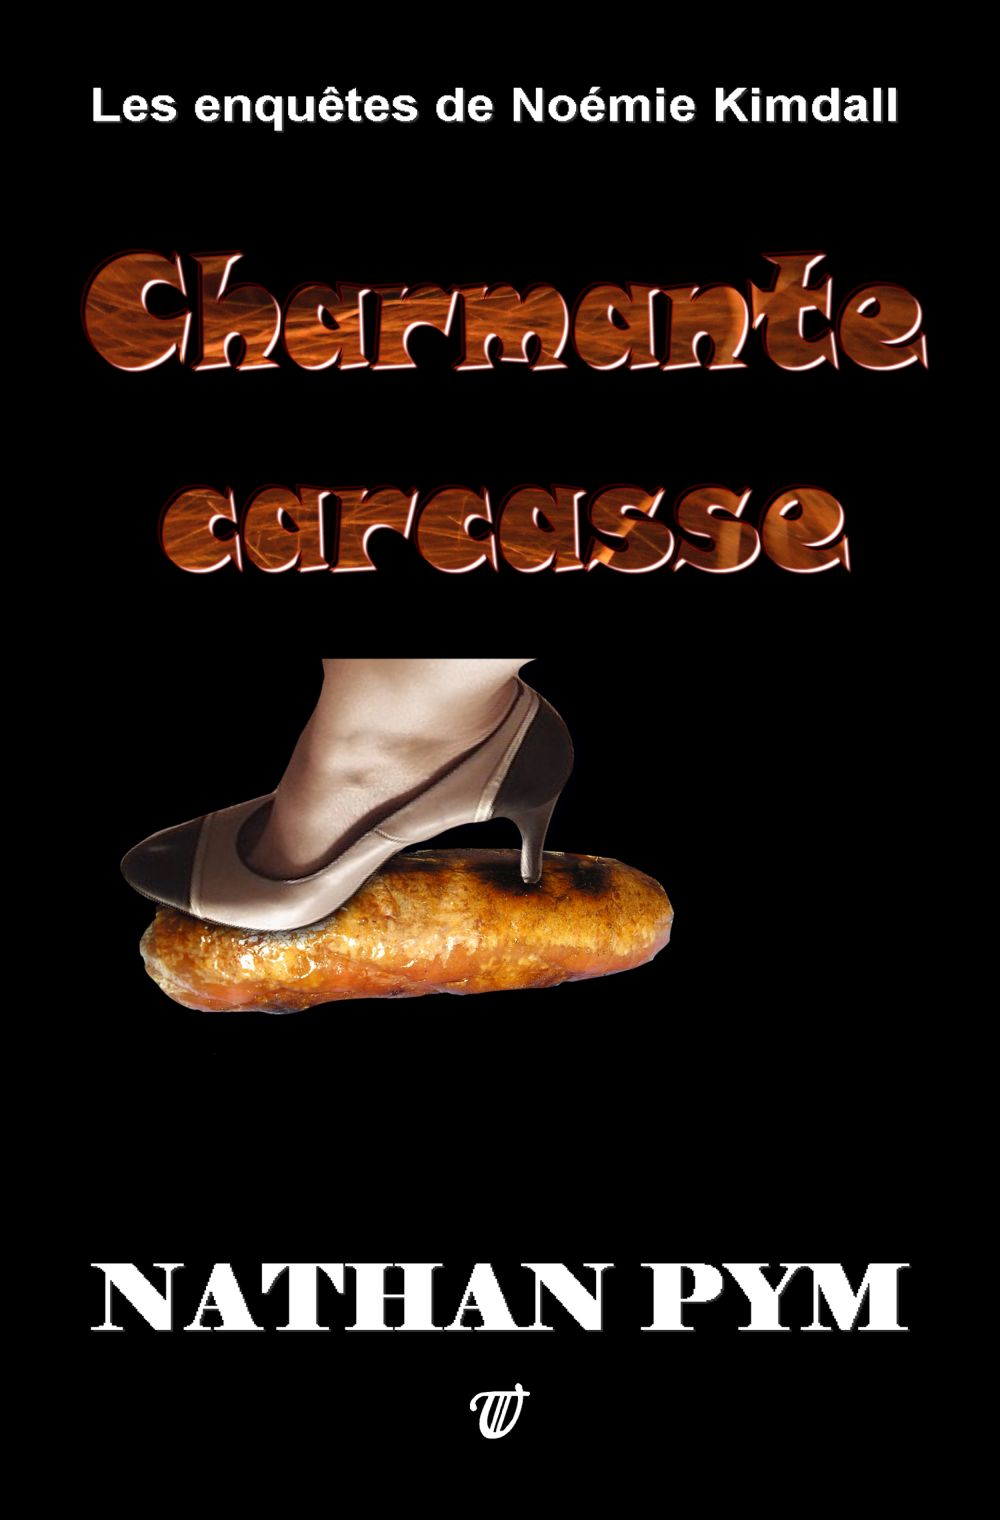 Charmante carcasse